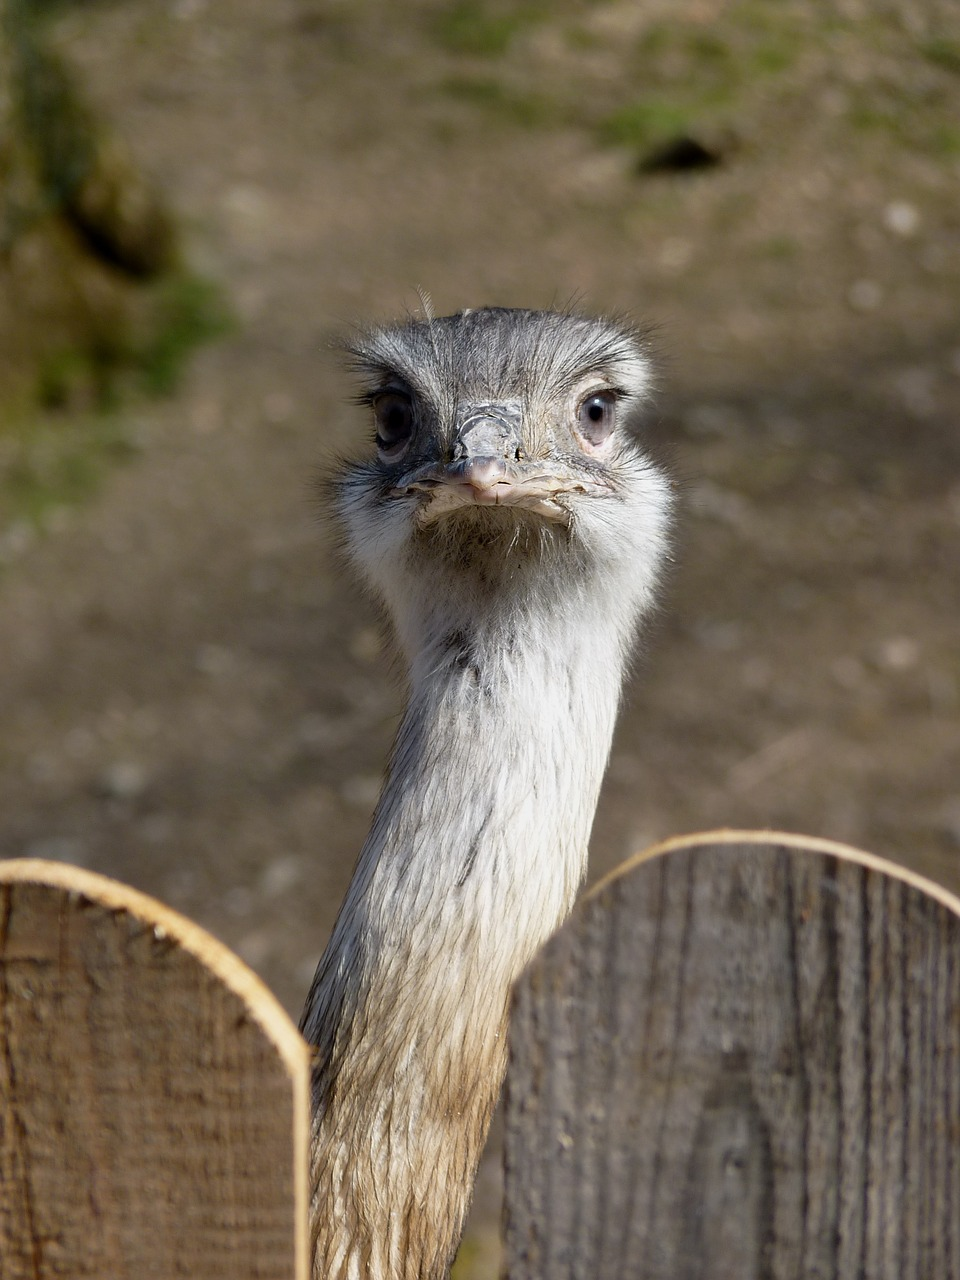 rhea bird,flightless bird,bird,head,bill,big bird,animal,flightless,neck,cheeky,nature,curious,fence,free pictures, free photos, free images, royalty free, free illustrations